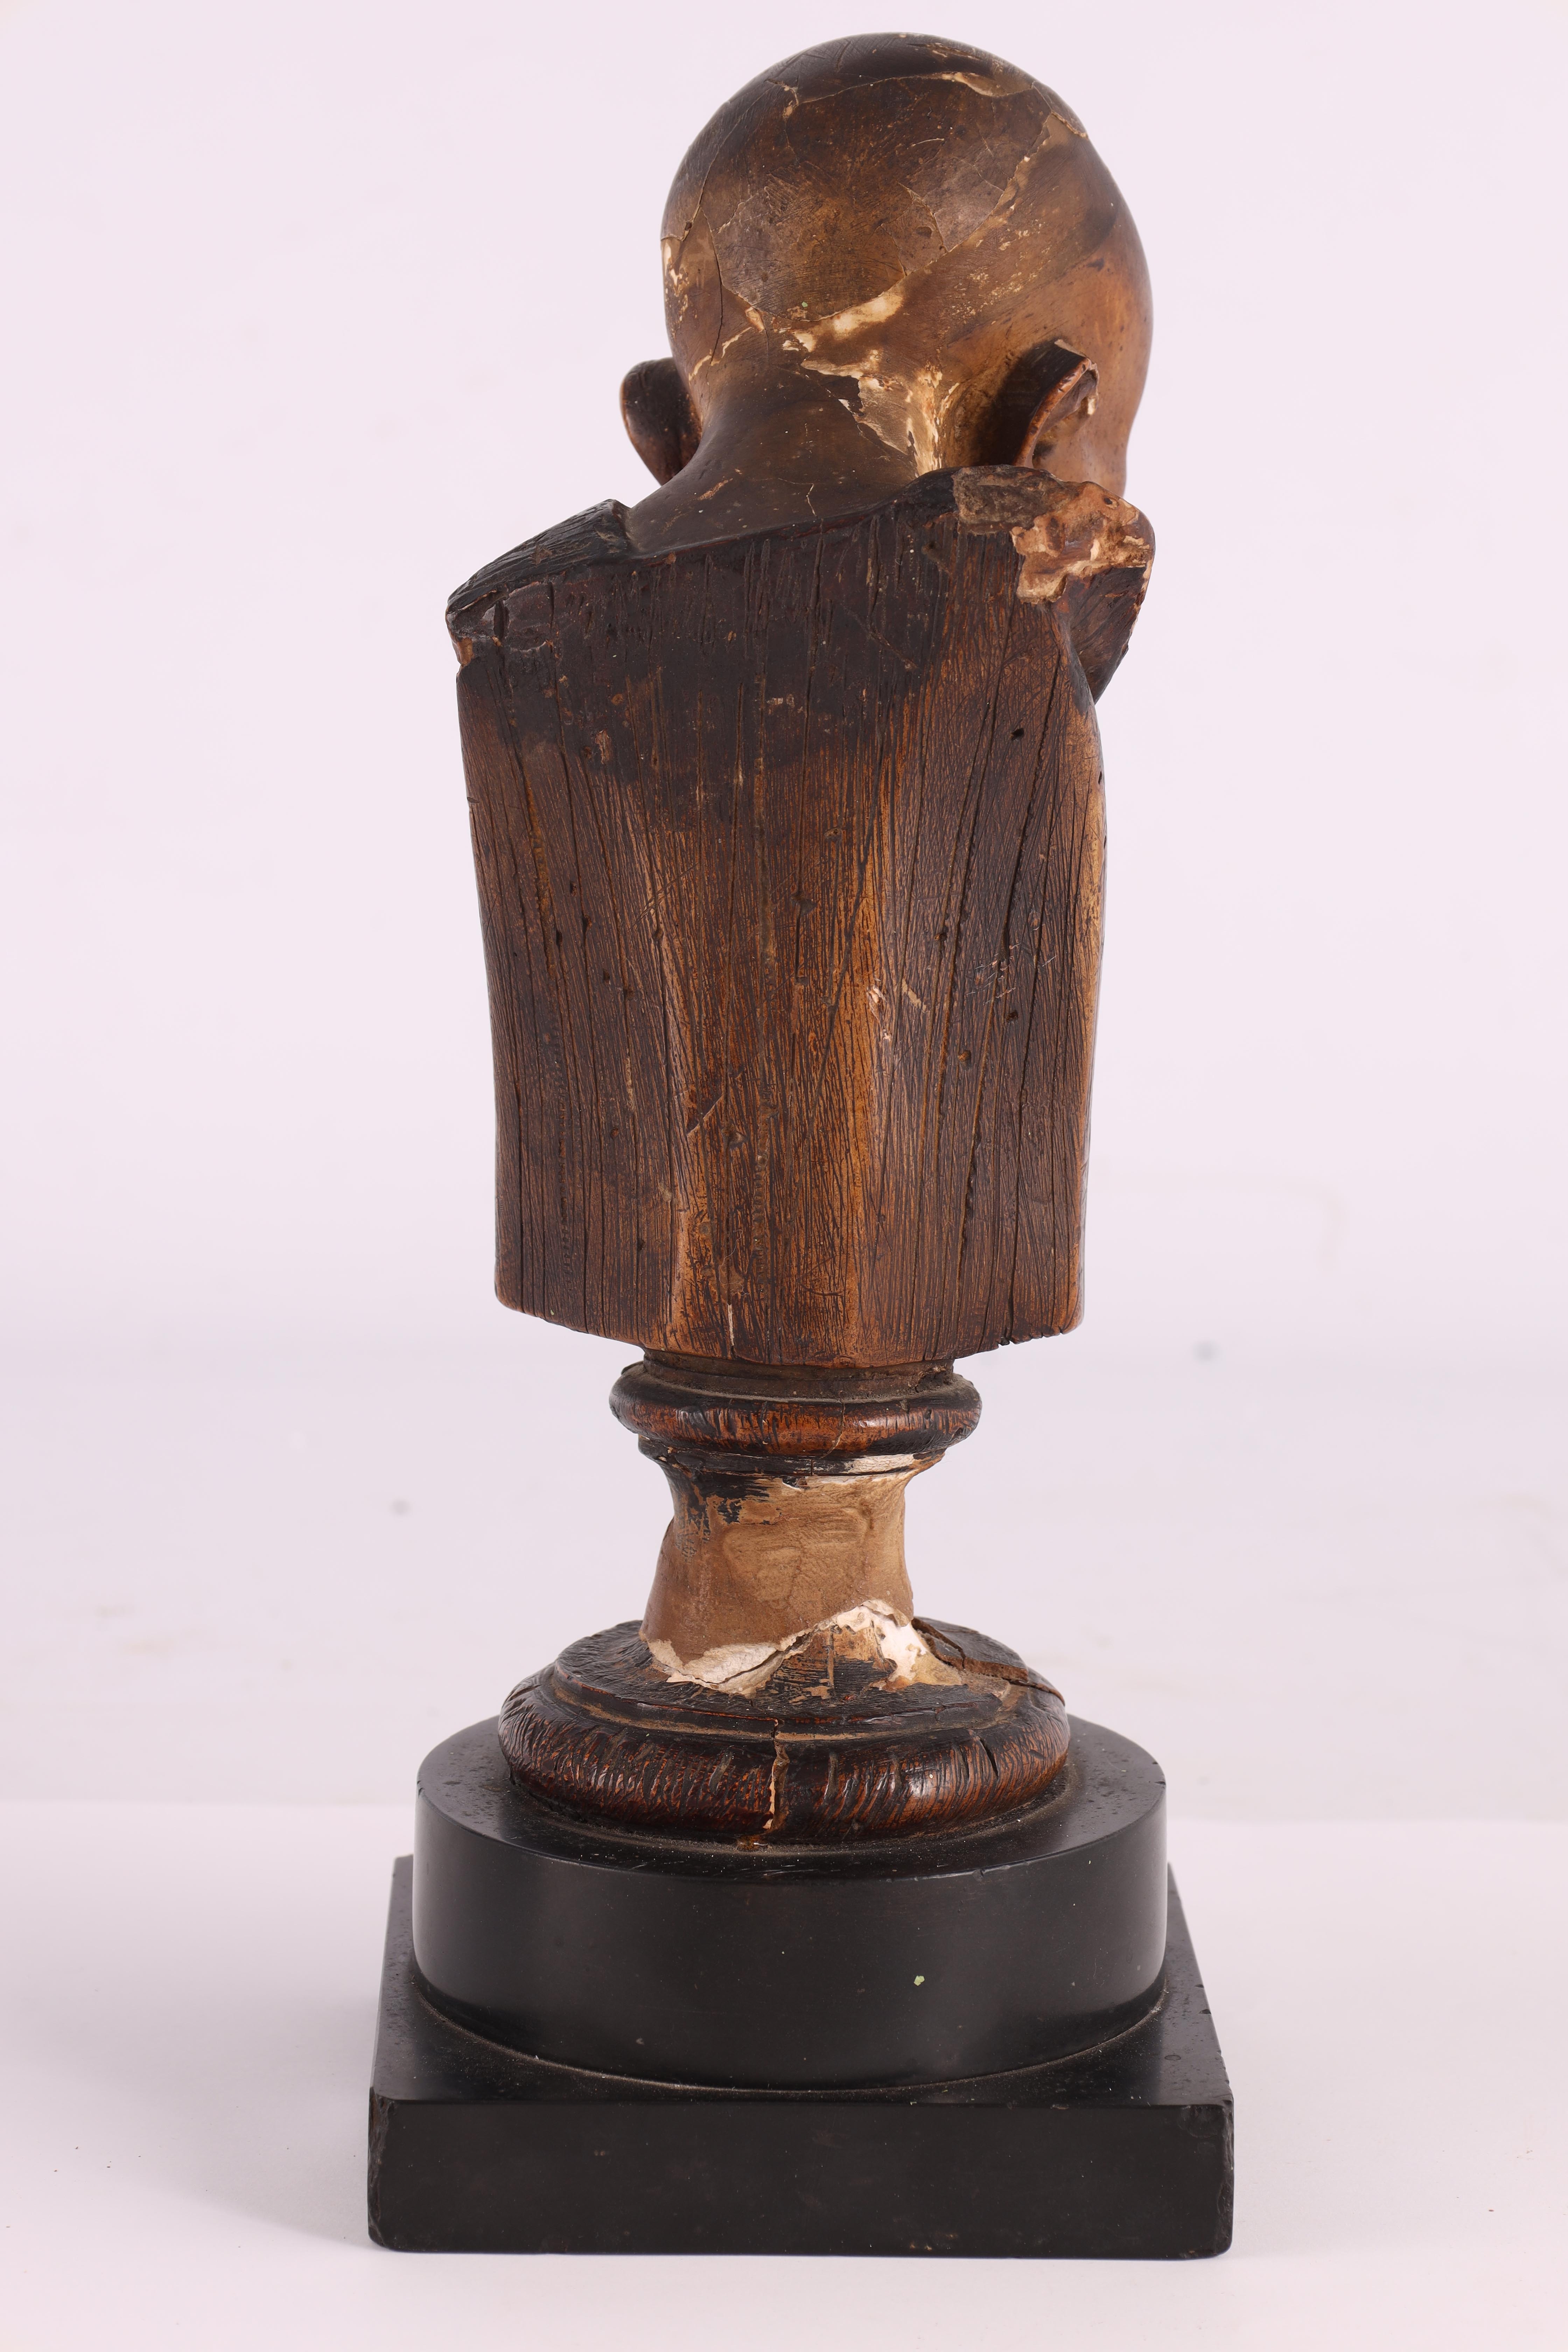 A 19TH CENTURY POLYCHROME PLASTER BUST modelled as a monk with blue eyes mounted on a black marble - Image 5 of 5